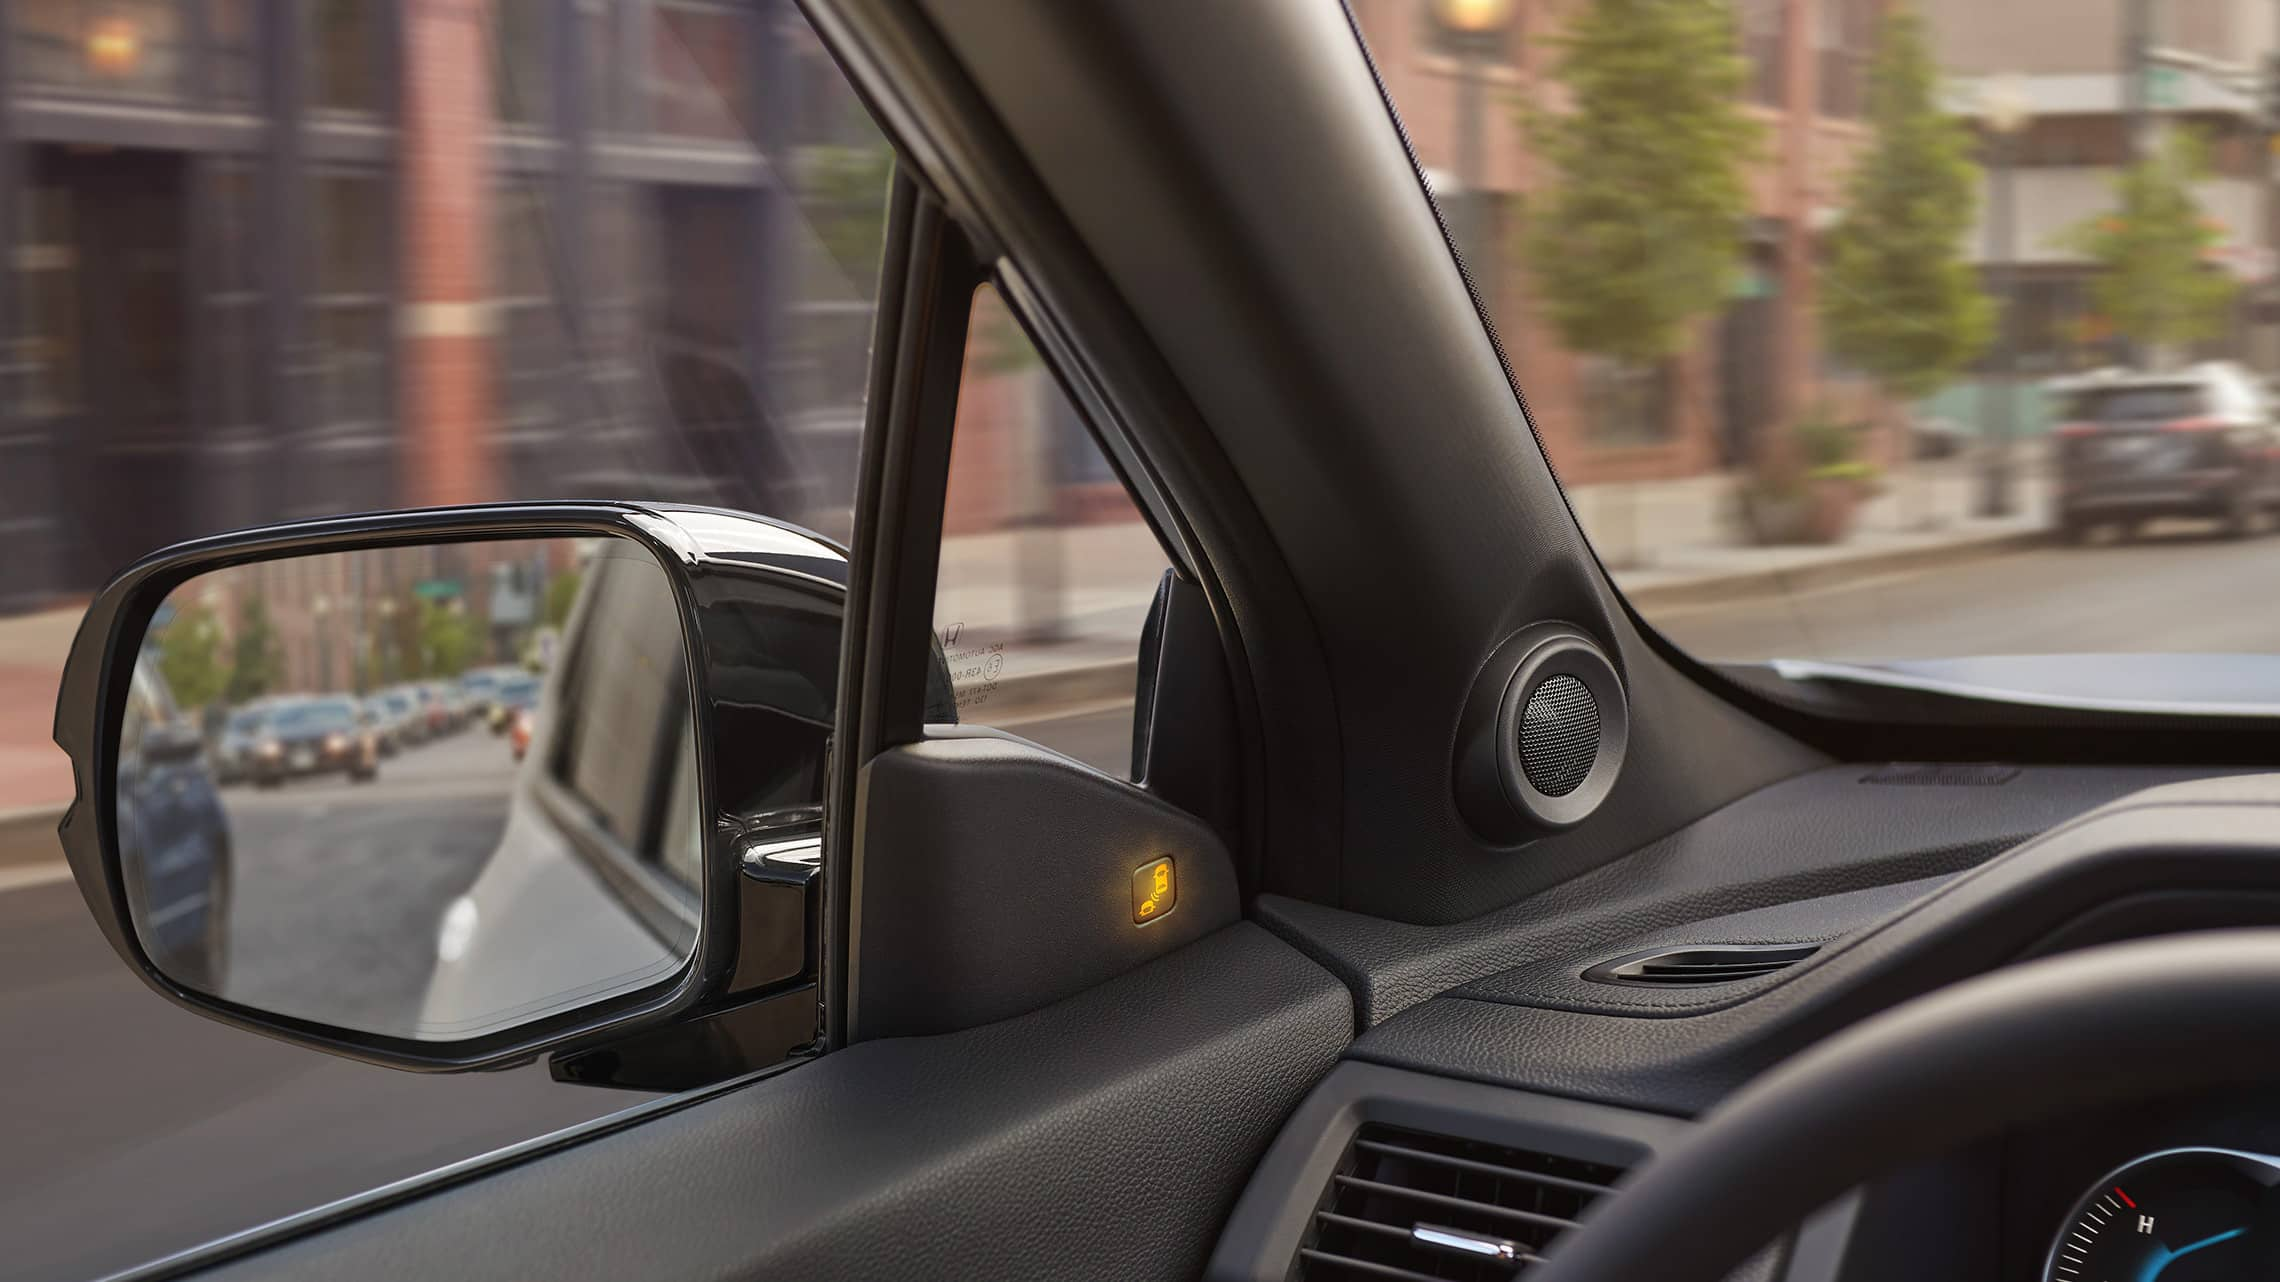 2021 Honda Passport Elite in Lunar Silver Metallic demonstrating the blind spot information system.